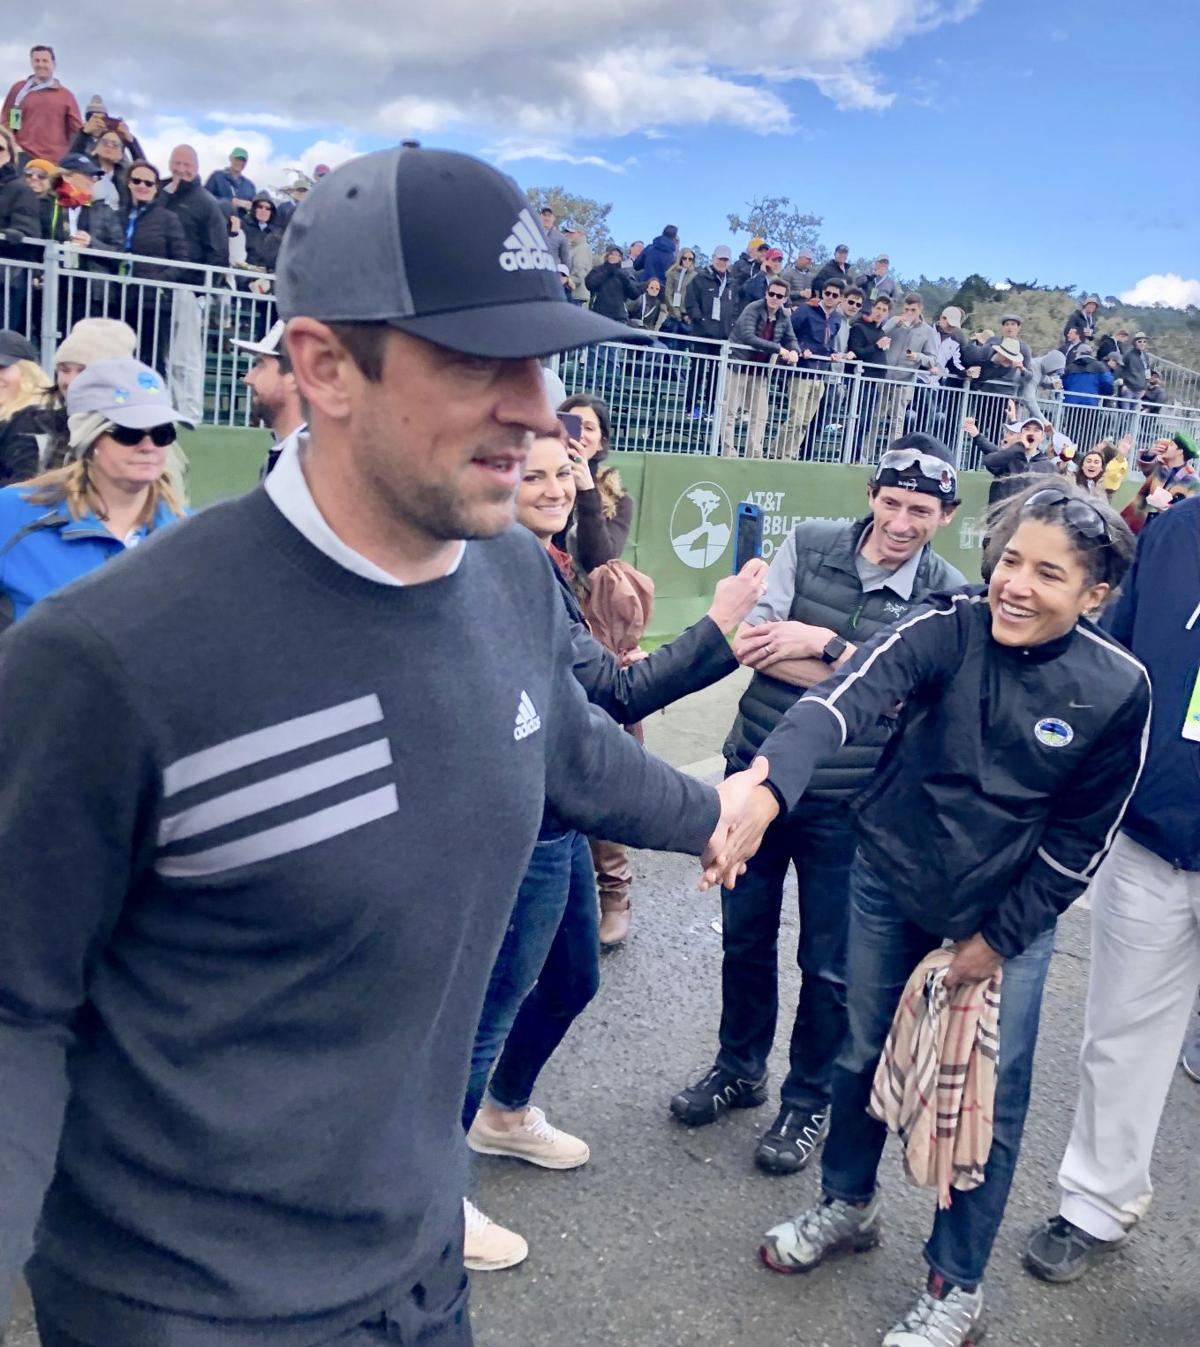 2019 AT&T Pebble Beach Pro-Am | Aaron Rodgers